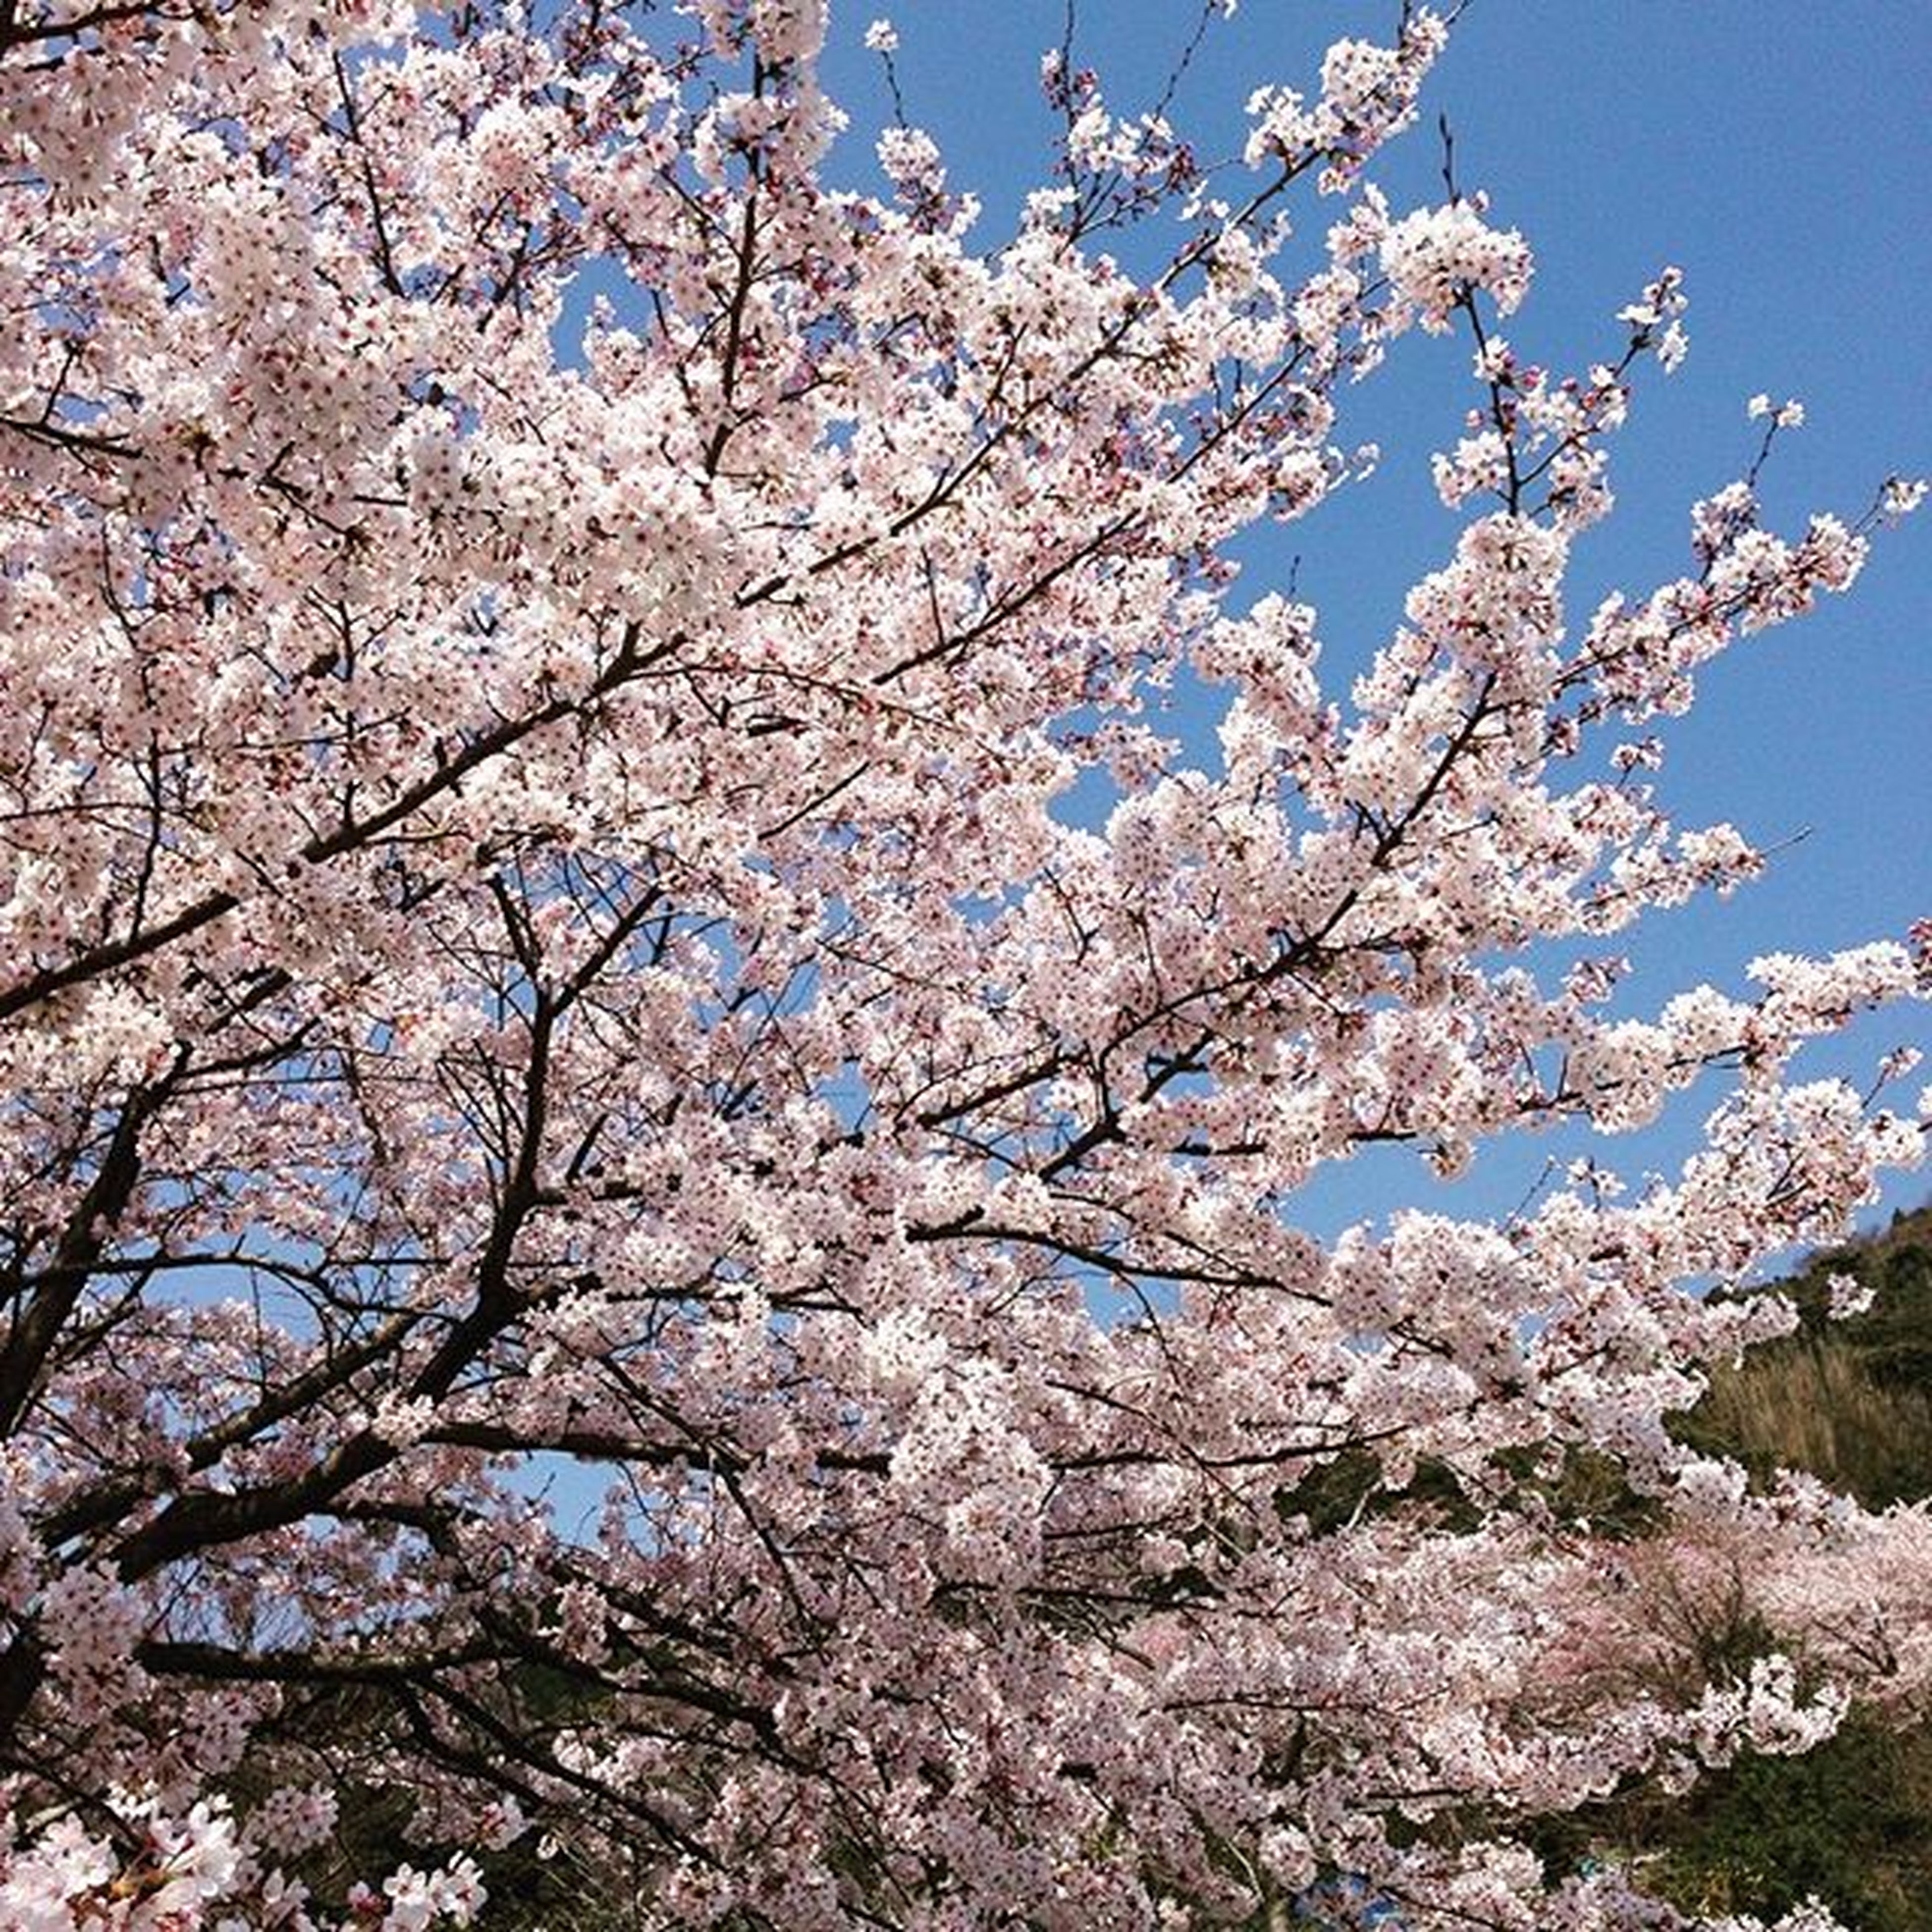 flower, tree, branch, cherry blossom, freshness, cherry tree, blossom, low angle view, growth, fragility, beauty in nature, nature, fruit tree, springtime, clear sky, in bloom, orchard, blooming, white color, apple tree